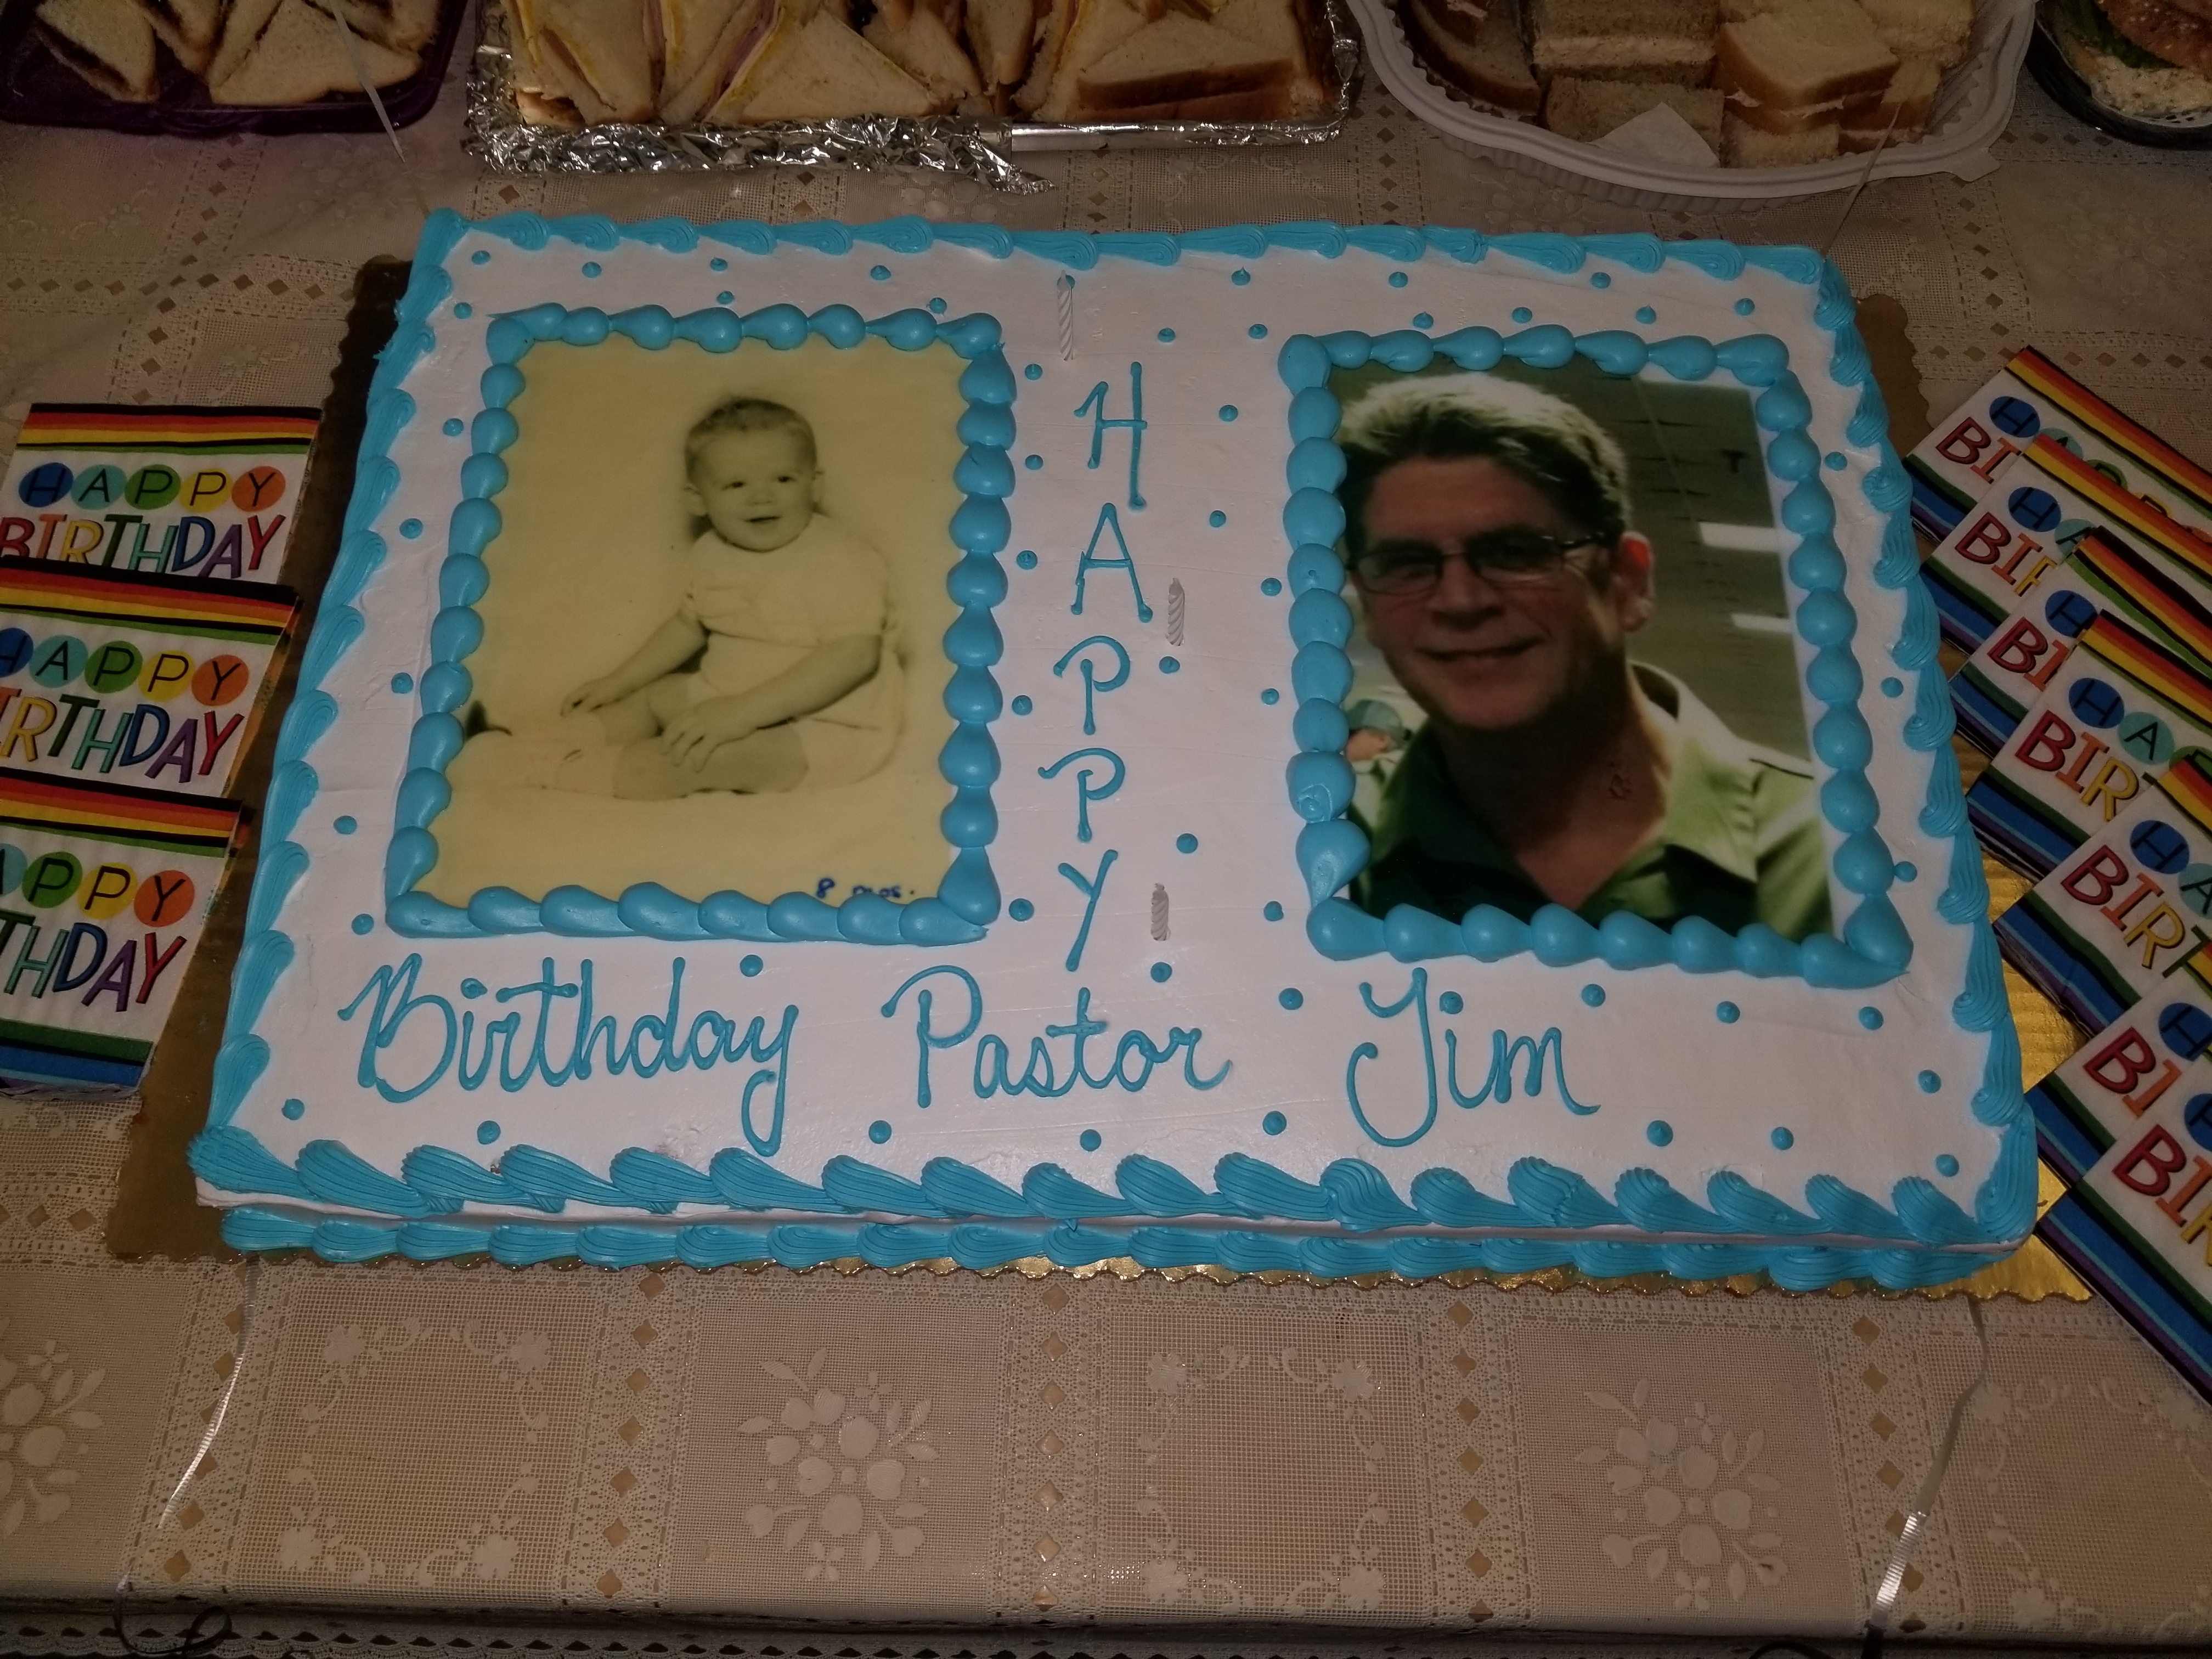 Birthday Wishes For Pastor Jim